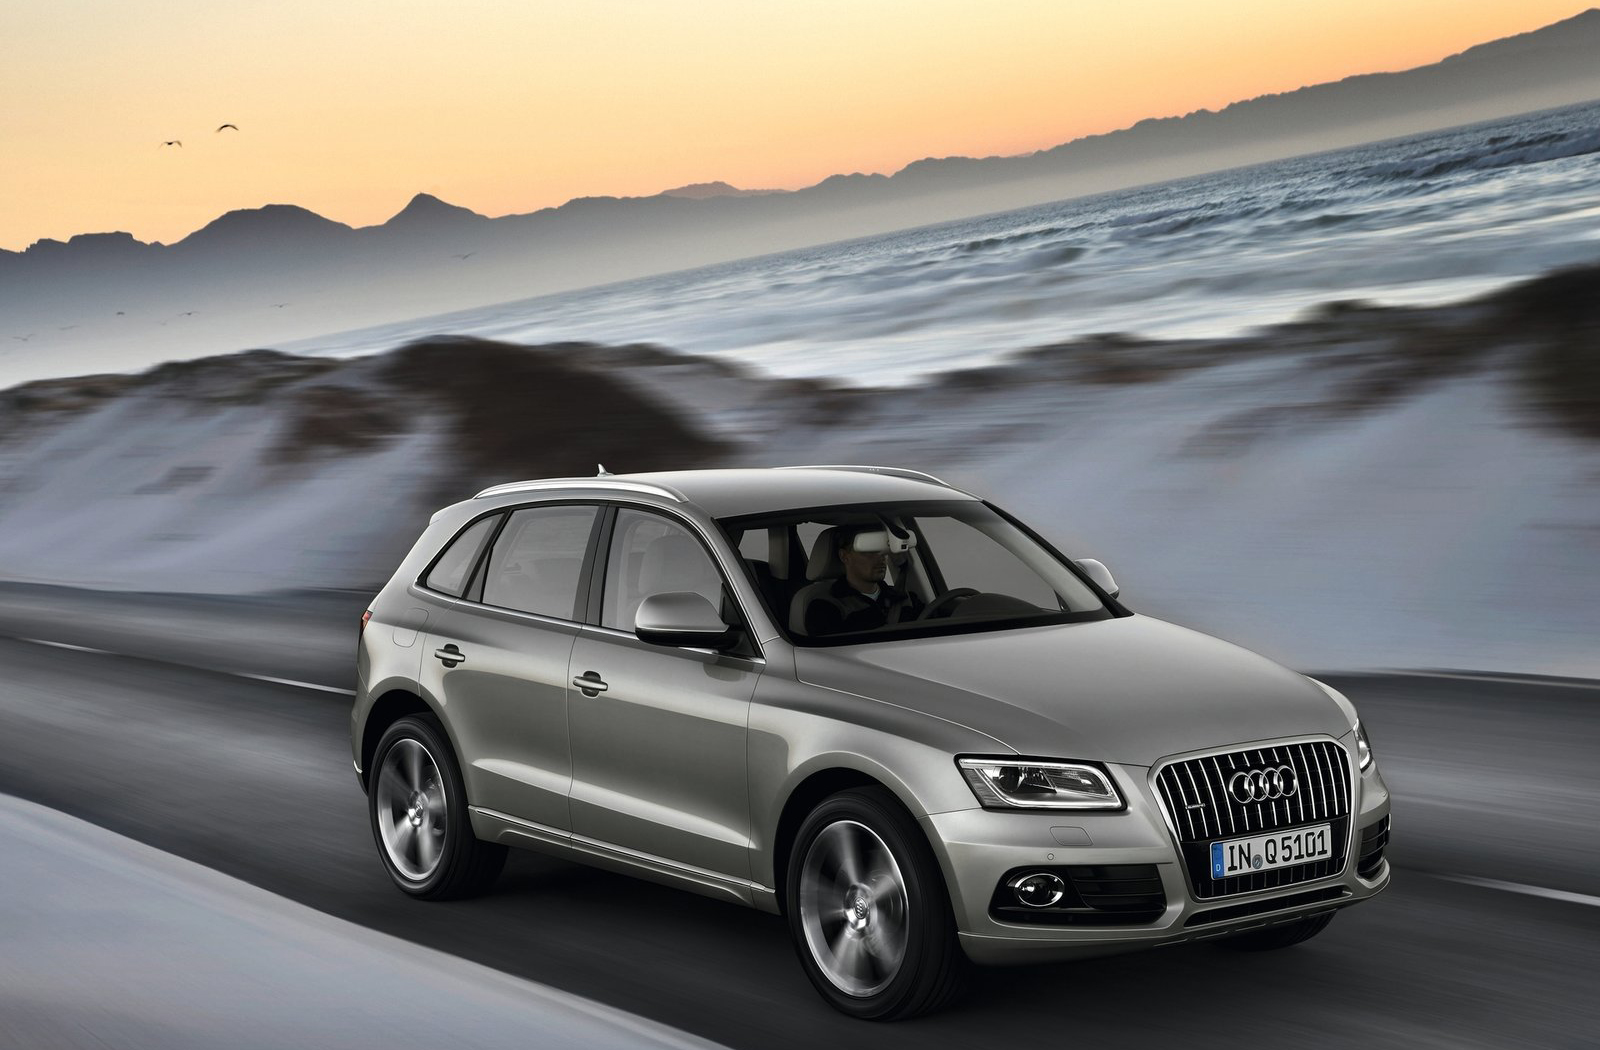 audi q5 hd wallpapers the world of audi. Black Bedroom Furniture Sets. Home Design Ideas